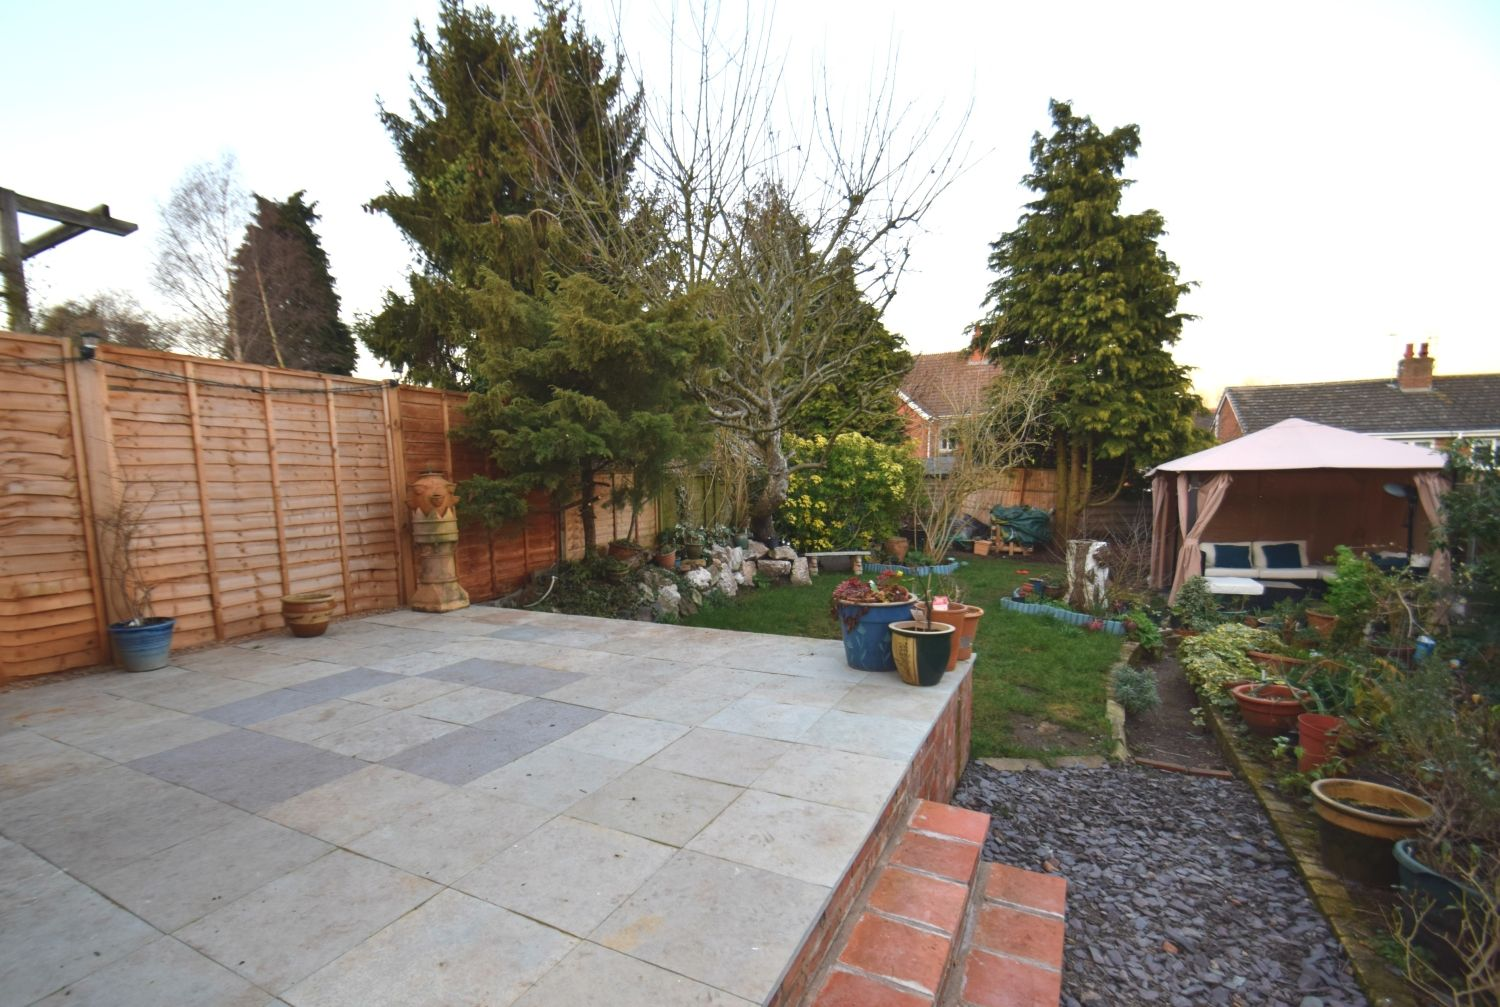 4 bed semi-detached for sale in Upland Grove, Bromsgrove, B61 28